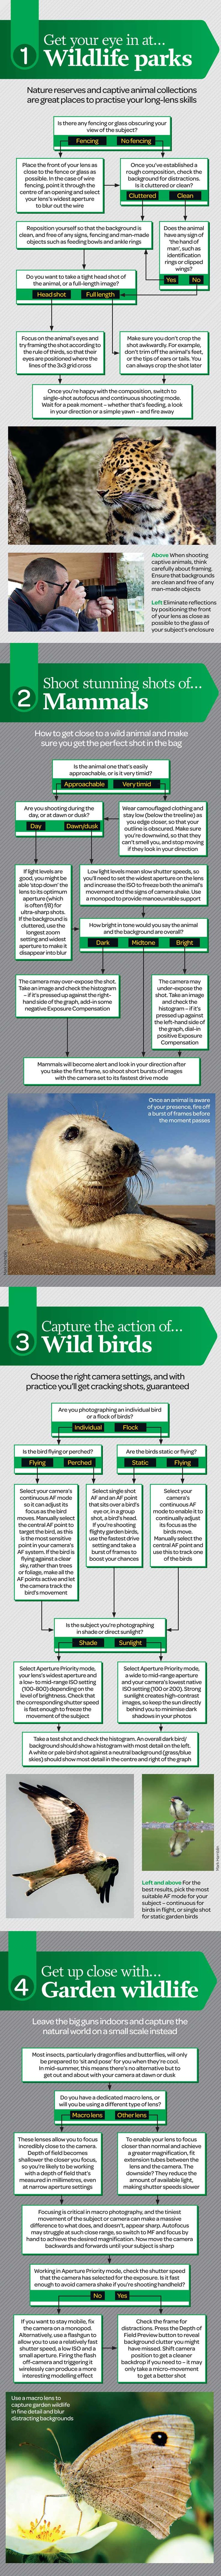 Wildlife photography in any environment